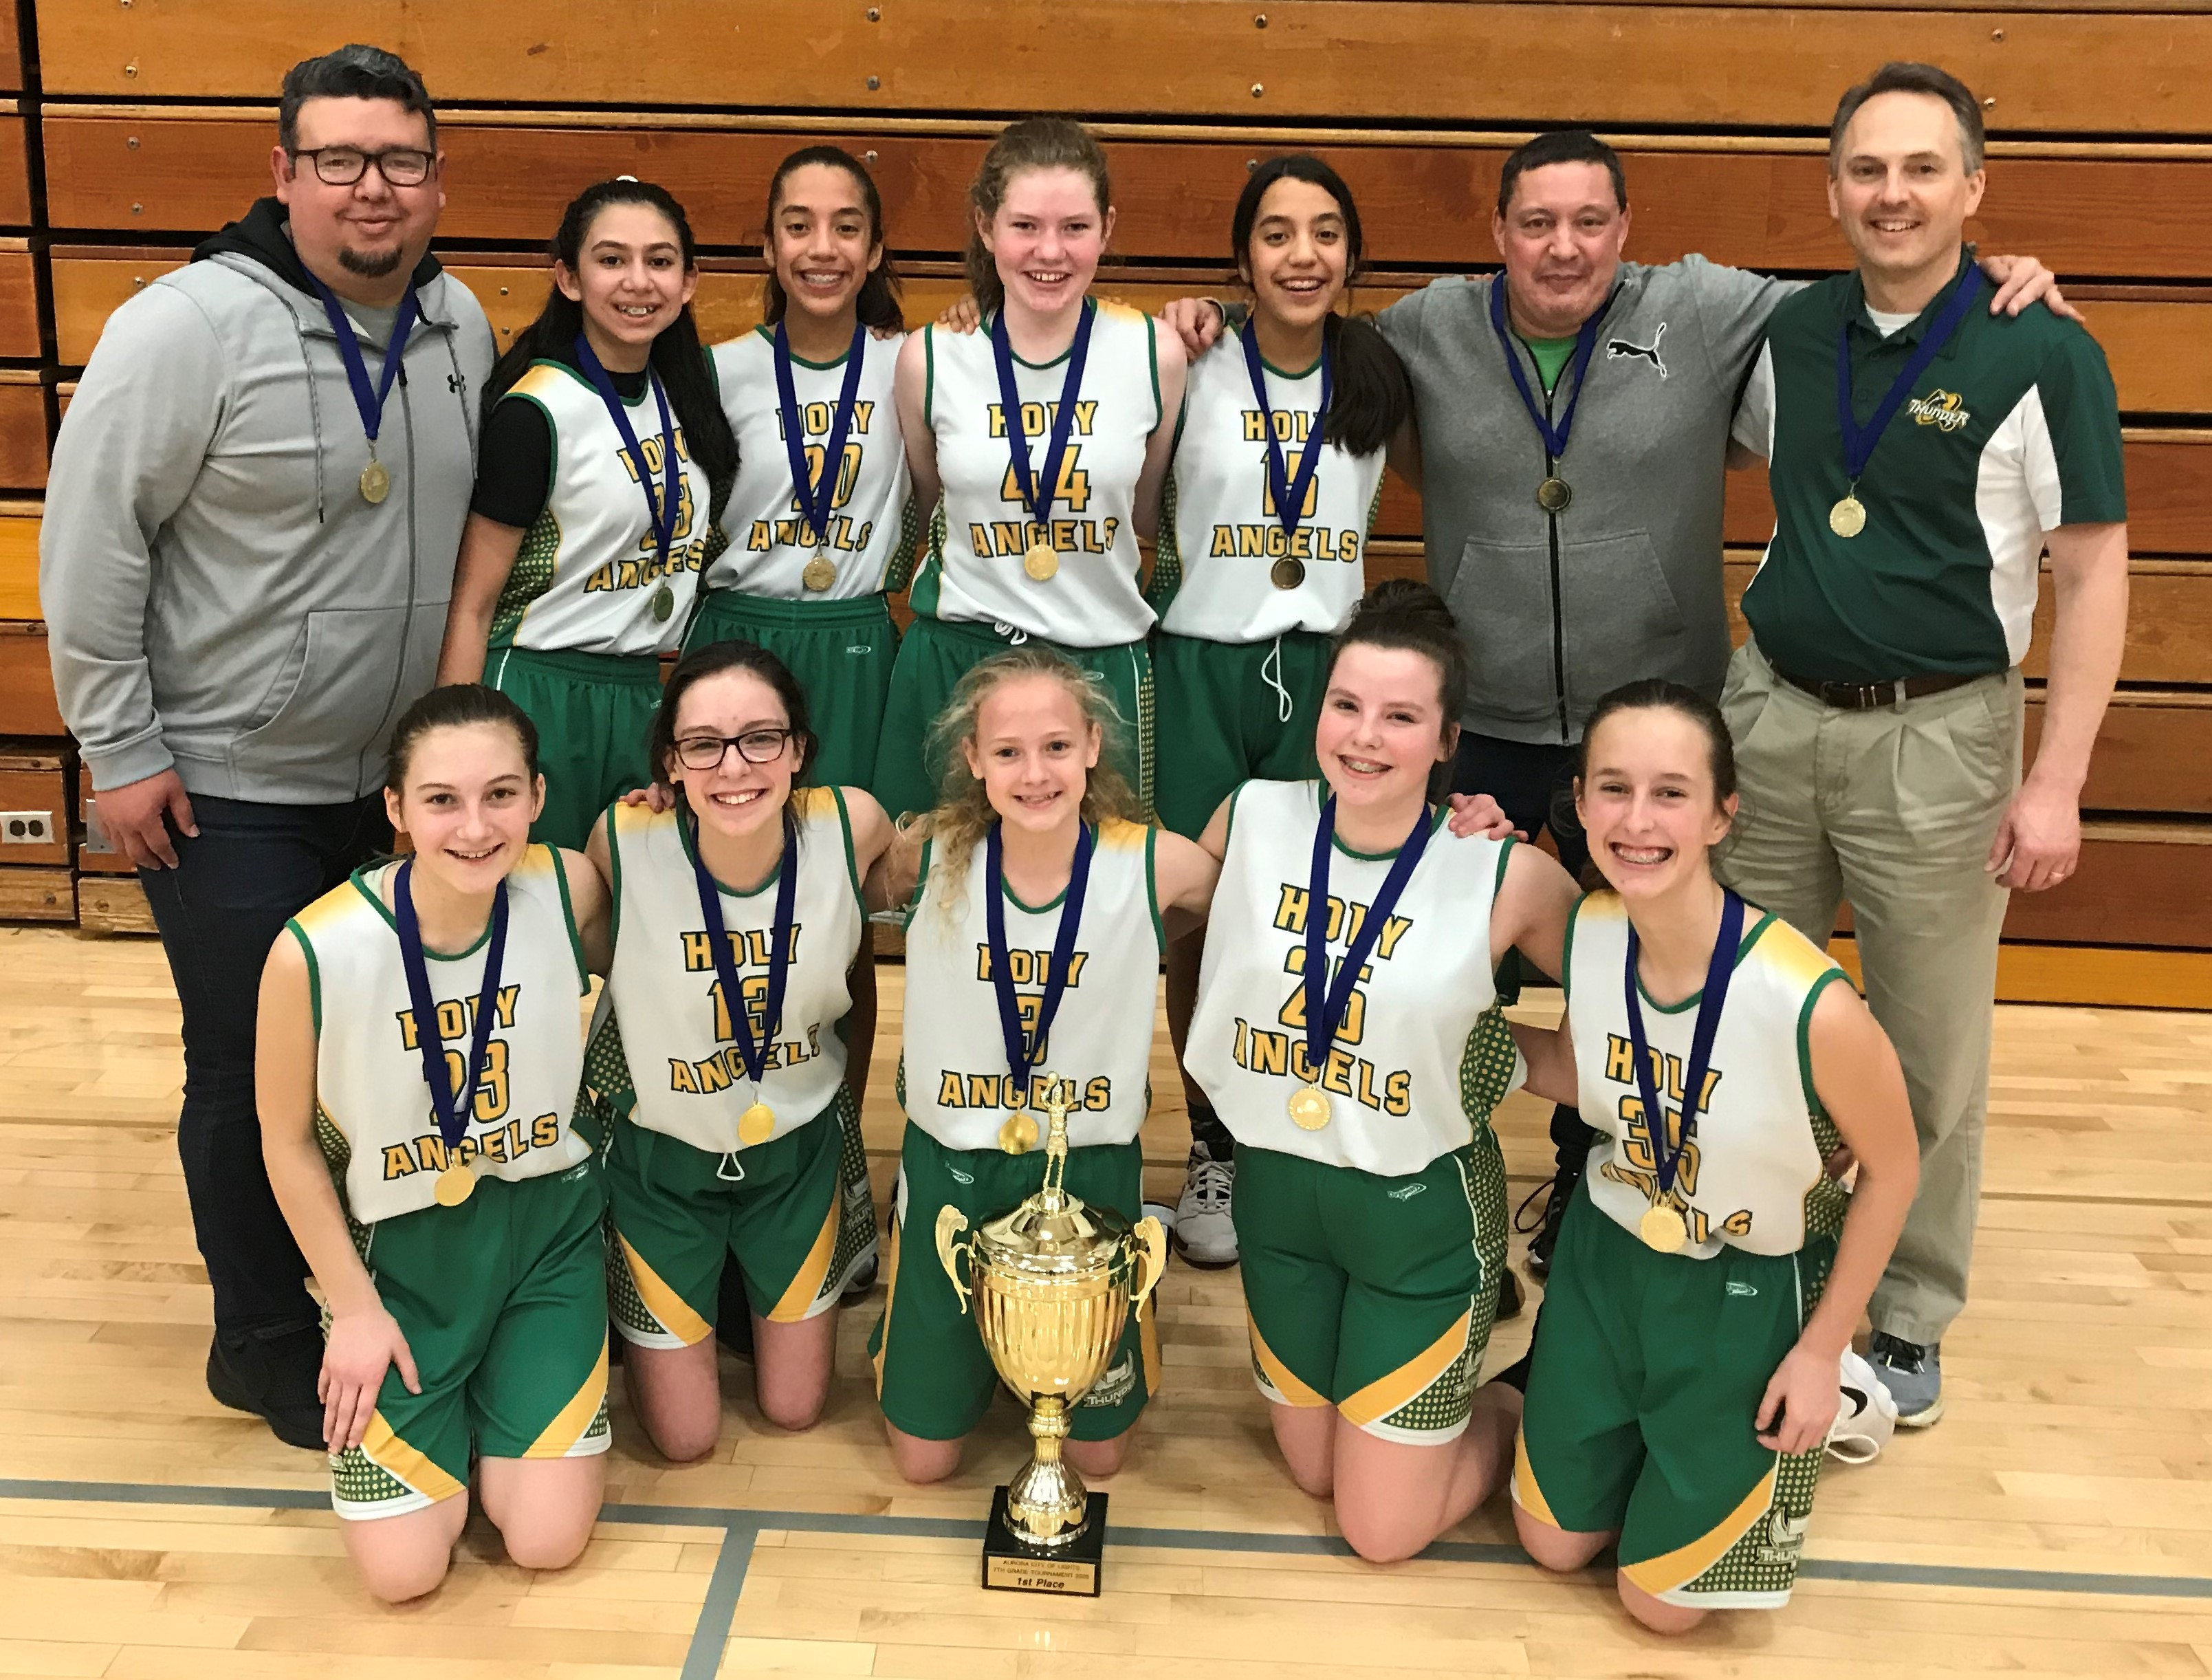 2020 7th Grade Girls Basketball Champions: Holy Angels Catholic School